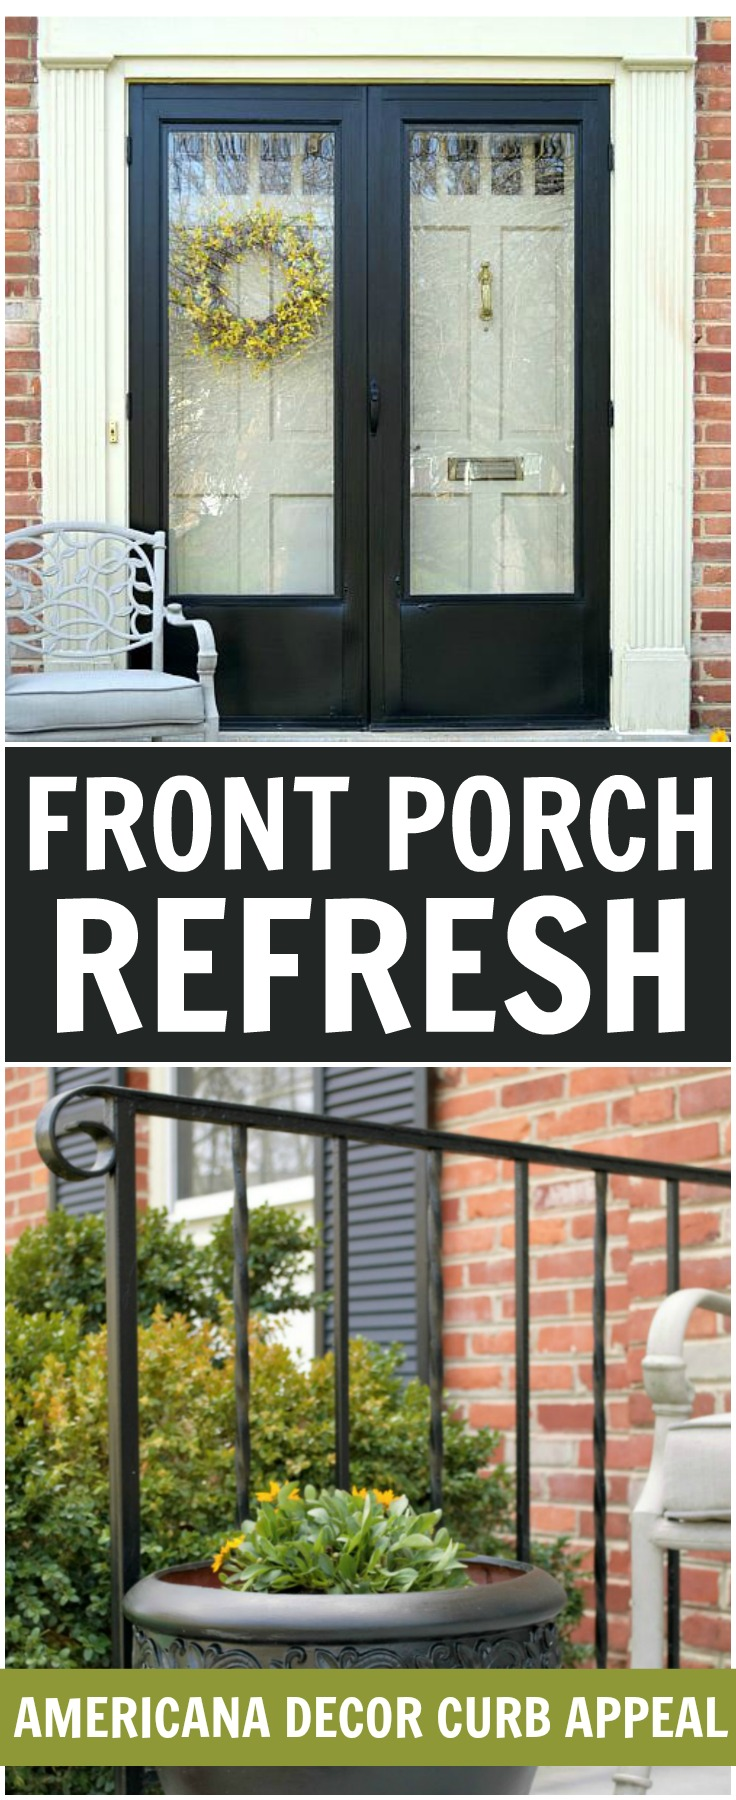 Front Porch Refresh